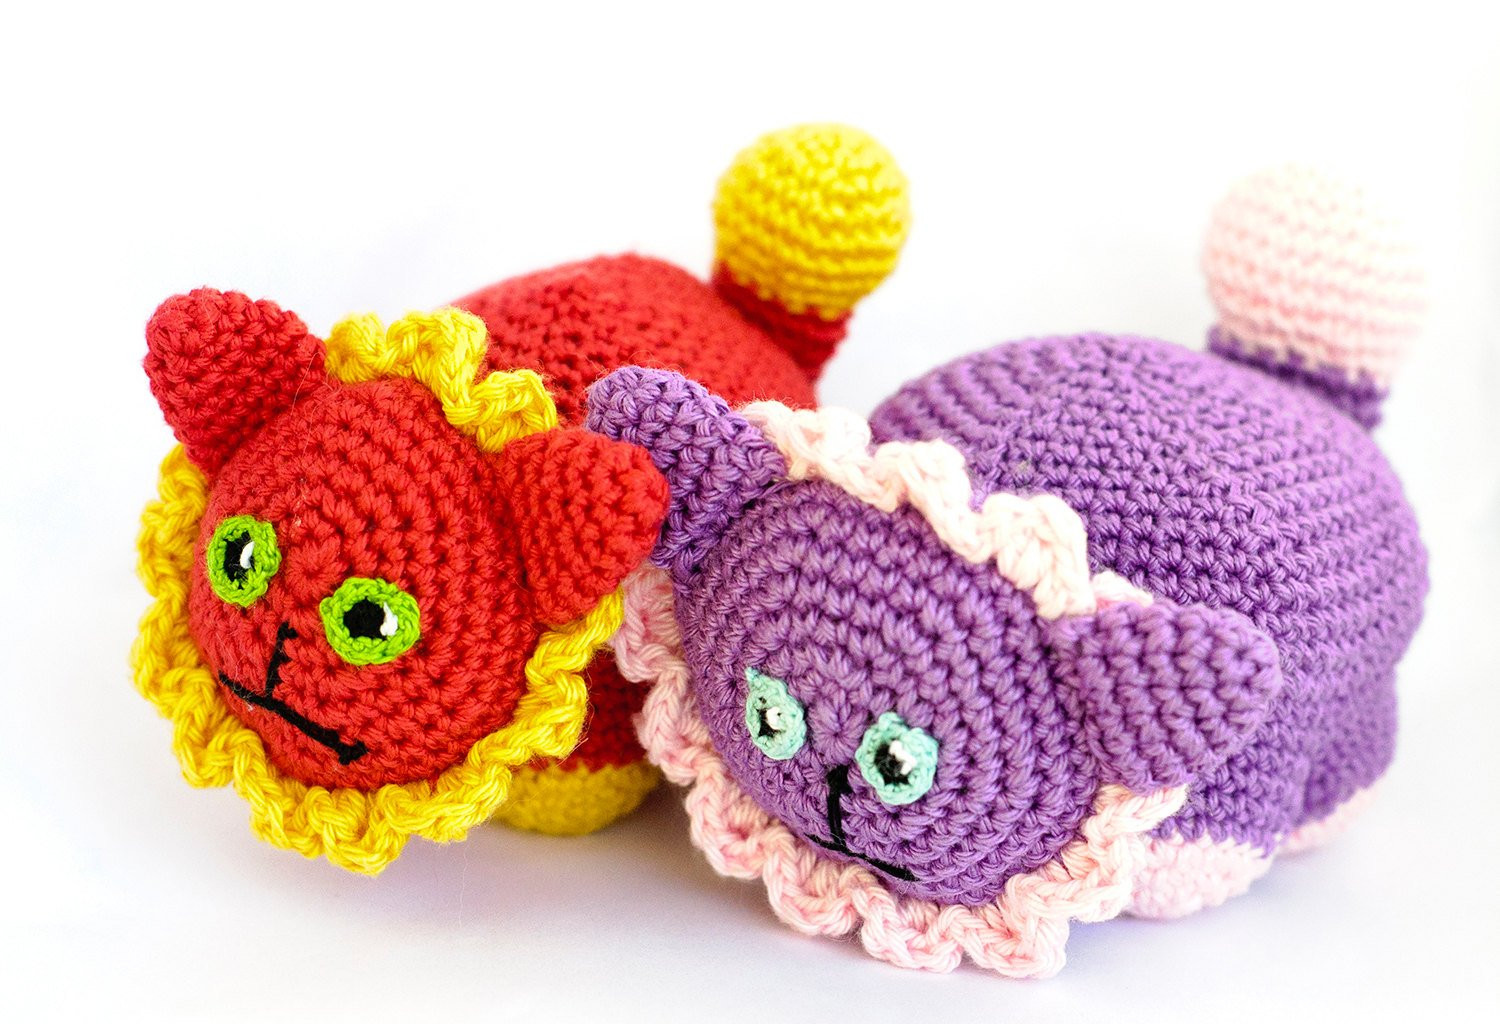 Luxury Amigurumi Crochet Pattern Quick Easy toy Lion Instructions Quick and Easy Crochet Patterns for Beginners Of Awesome 48 Photos Quick and Easy Crochet Patterns for Beginners